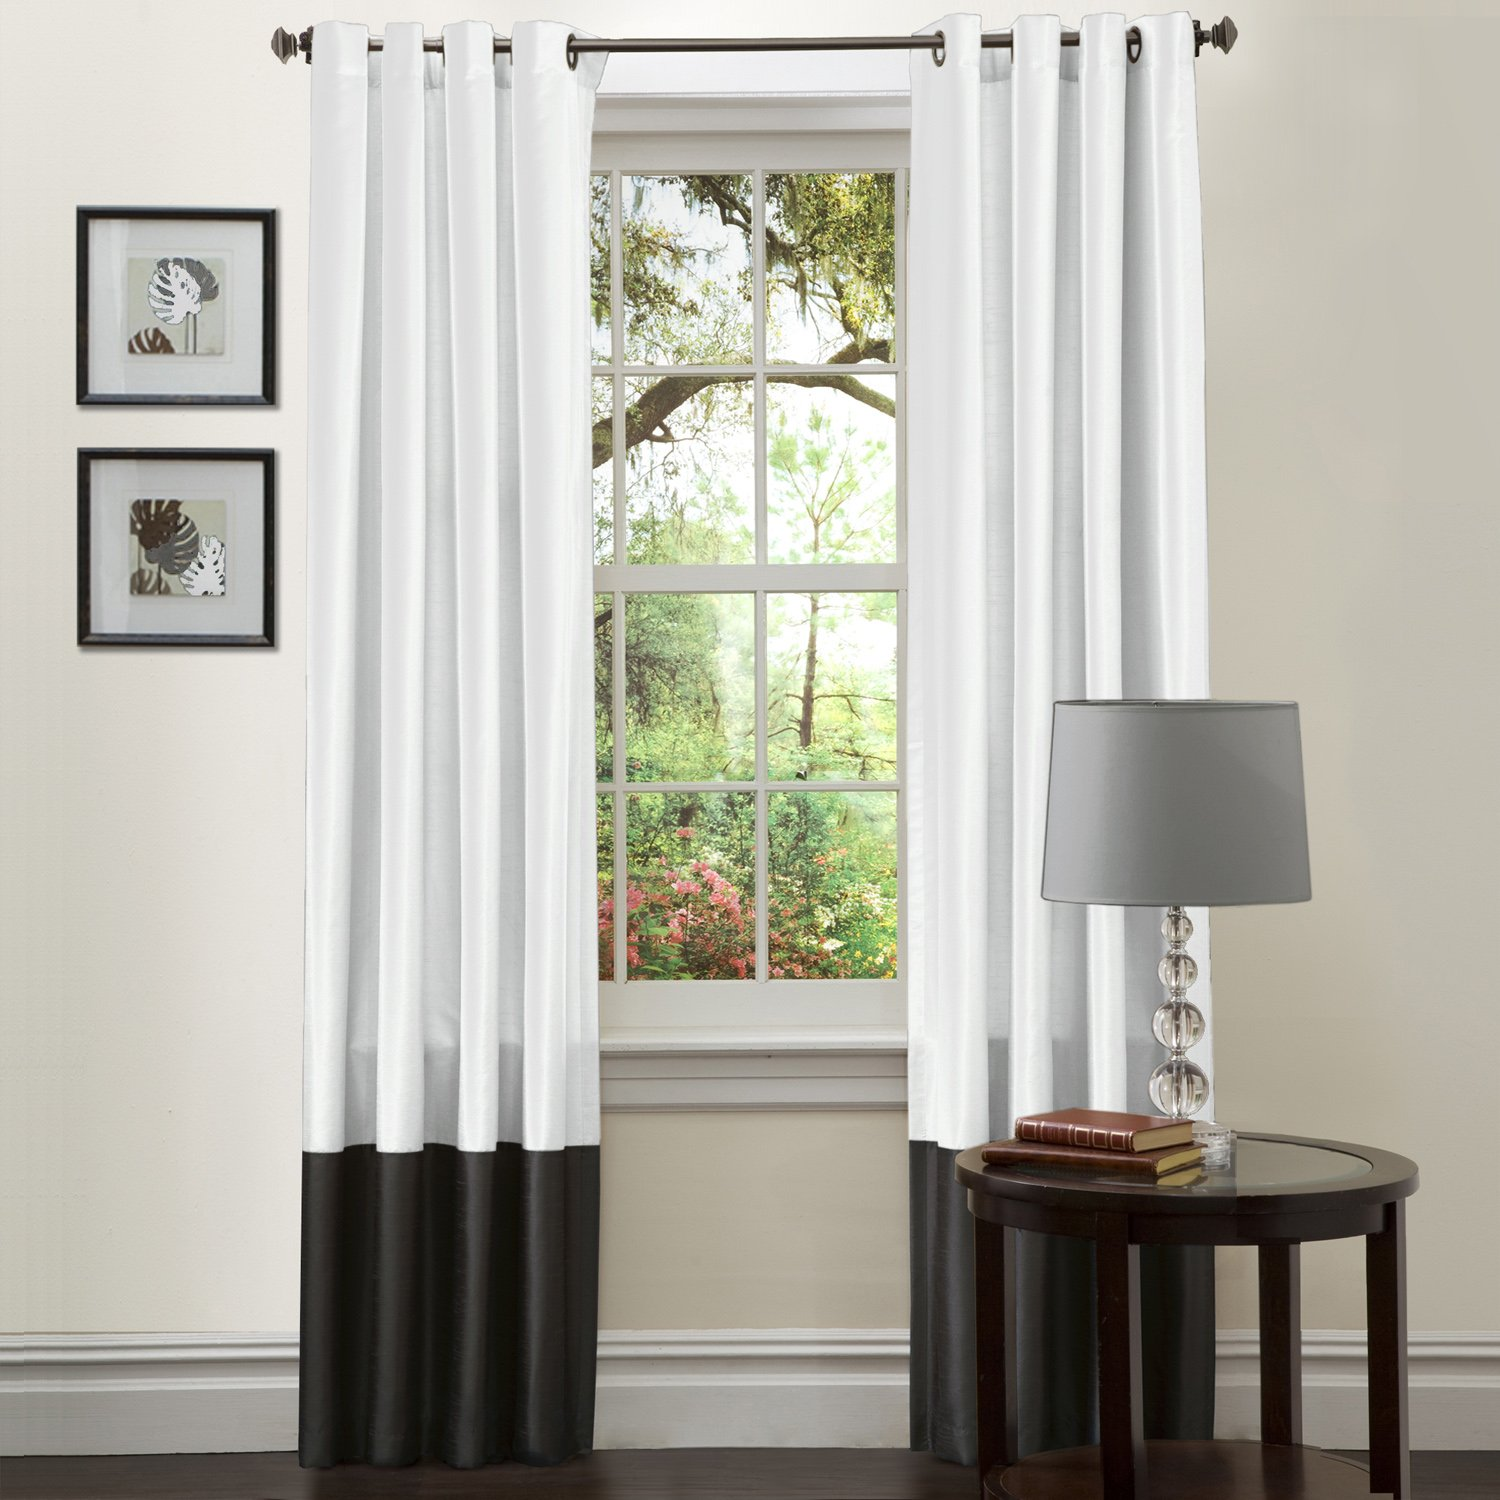 Black and white curtains - Amazon Com Lush Decor Prima Window Curtain Panel Pair 84 Inch X 54 Inch Black White Set Of 2 Home Kitchen